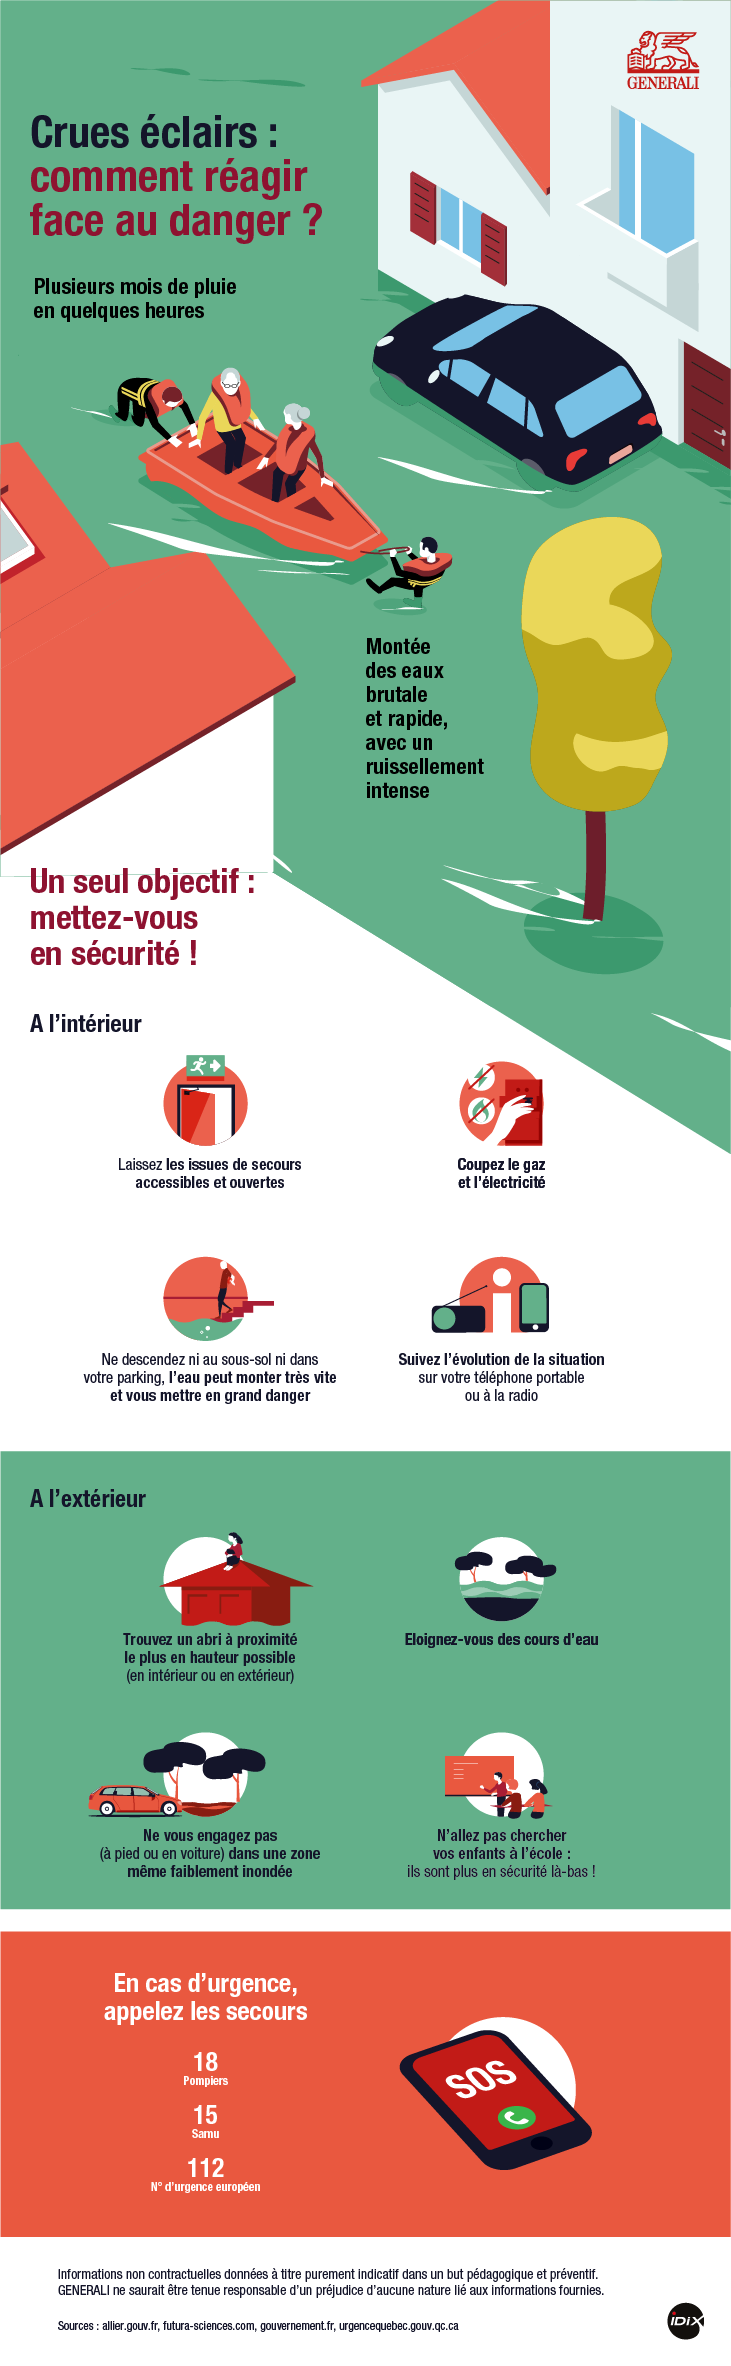 Crues-eclairs-infographie.png